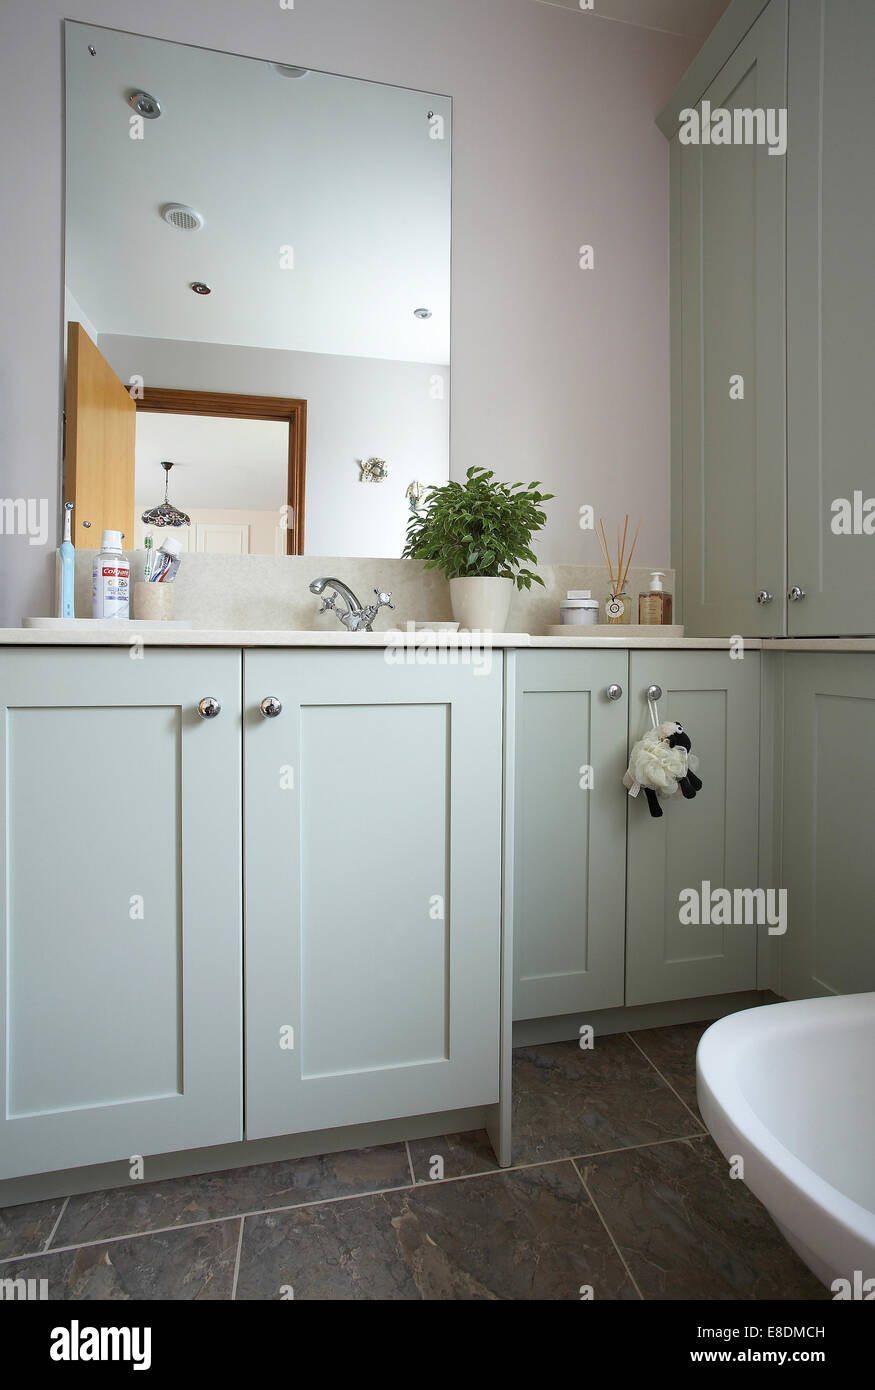 Sink Units Stock Photos & Sink Units Stock Images - Alamy